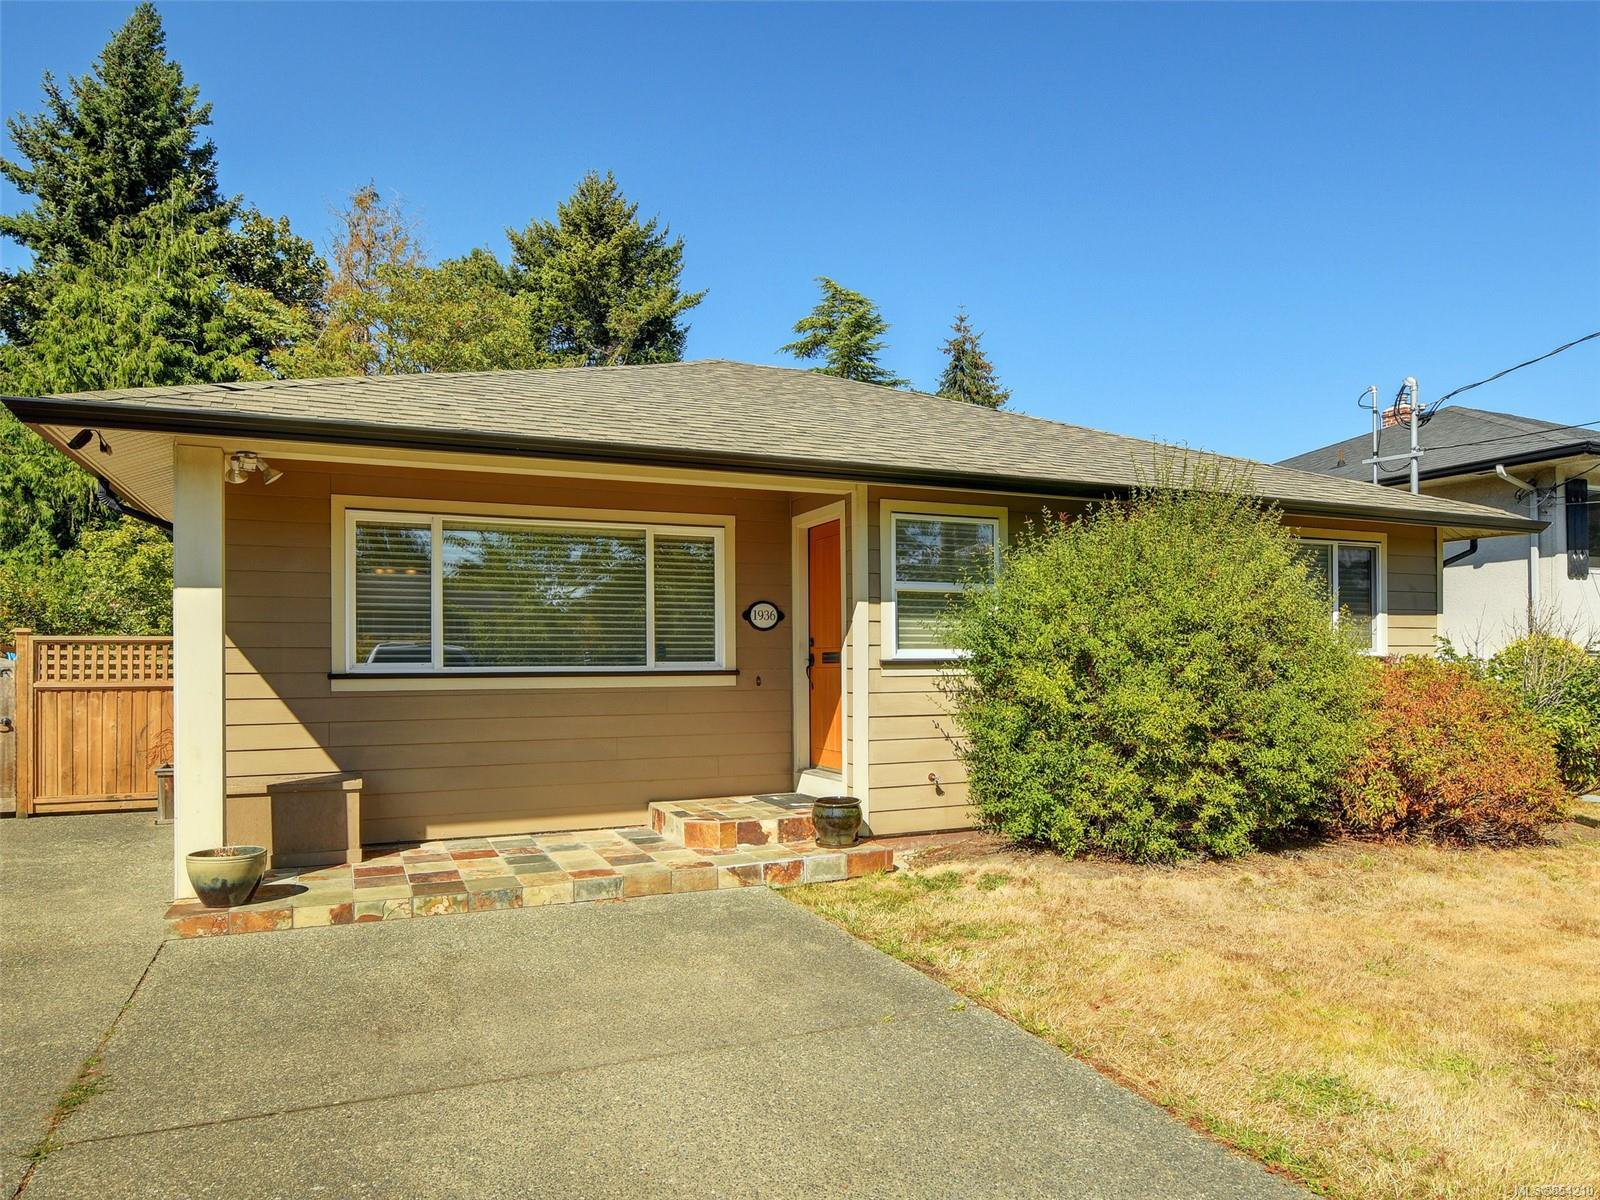 Main Photo: 1936 Carnarvon St in : SE Camosun House for sale (Saanich East)  : MLS®# 854210